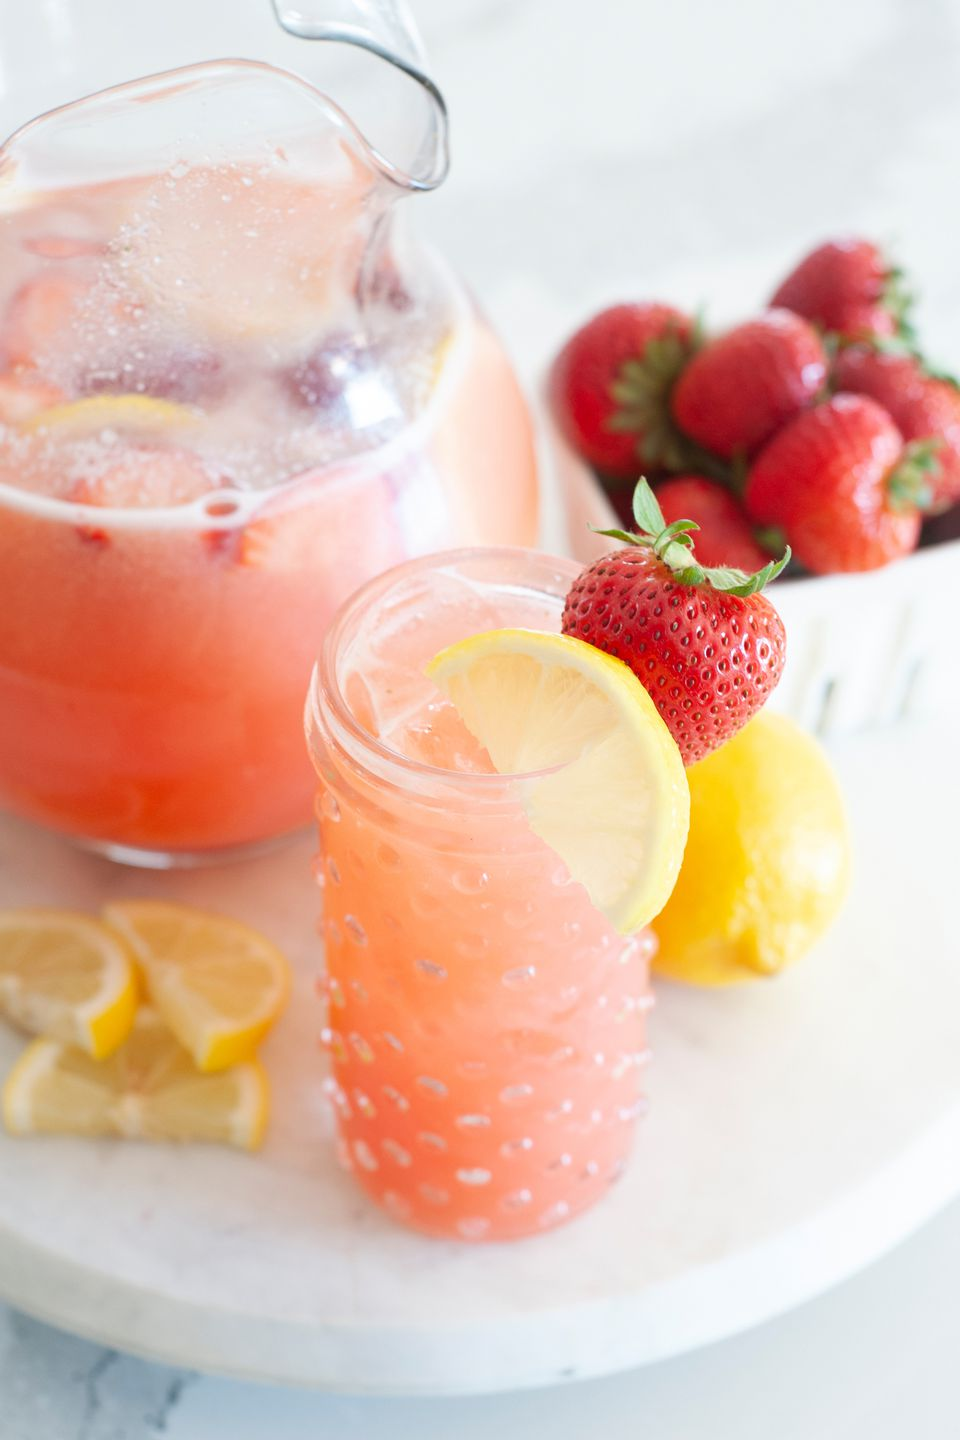 A round platter with a glass and pitcher of blender strawberry lemonade.